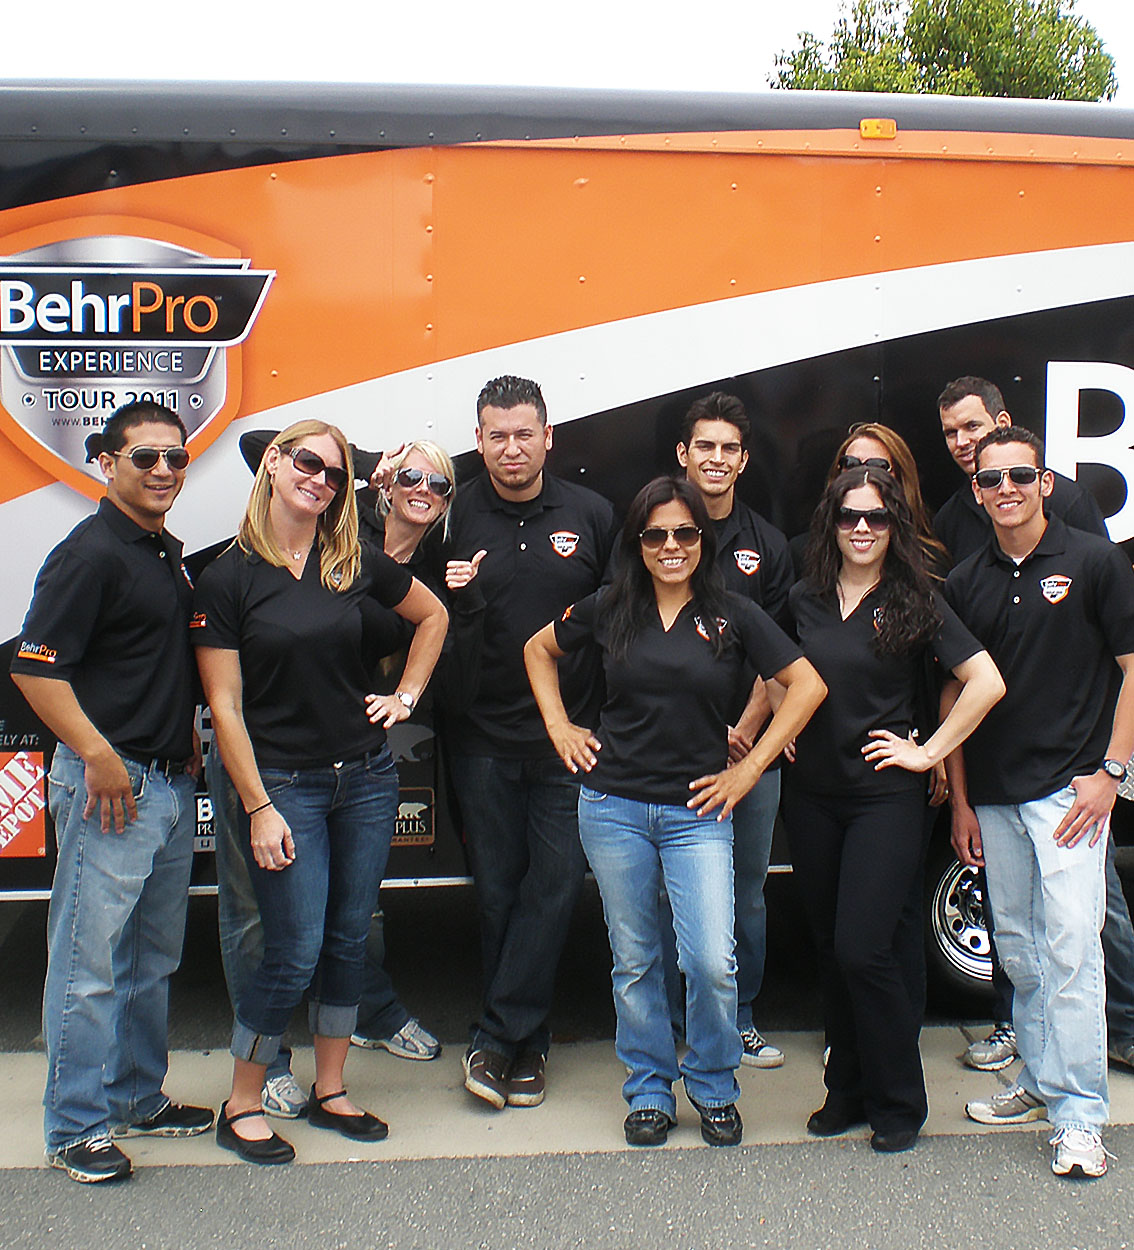 Behr Pro <br> Experience Tour